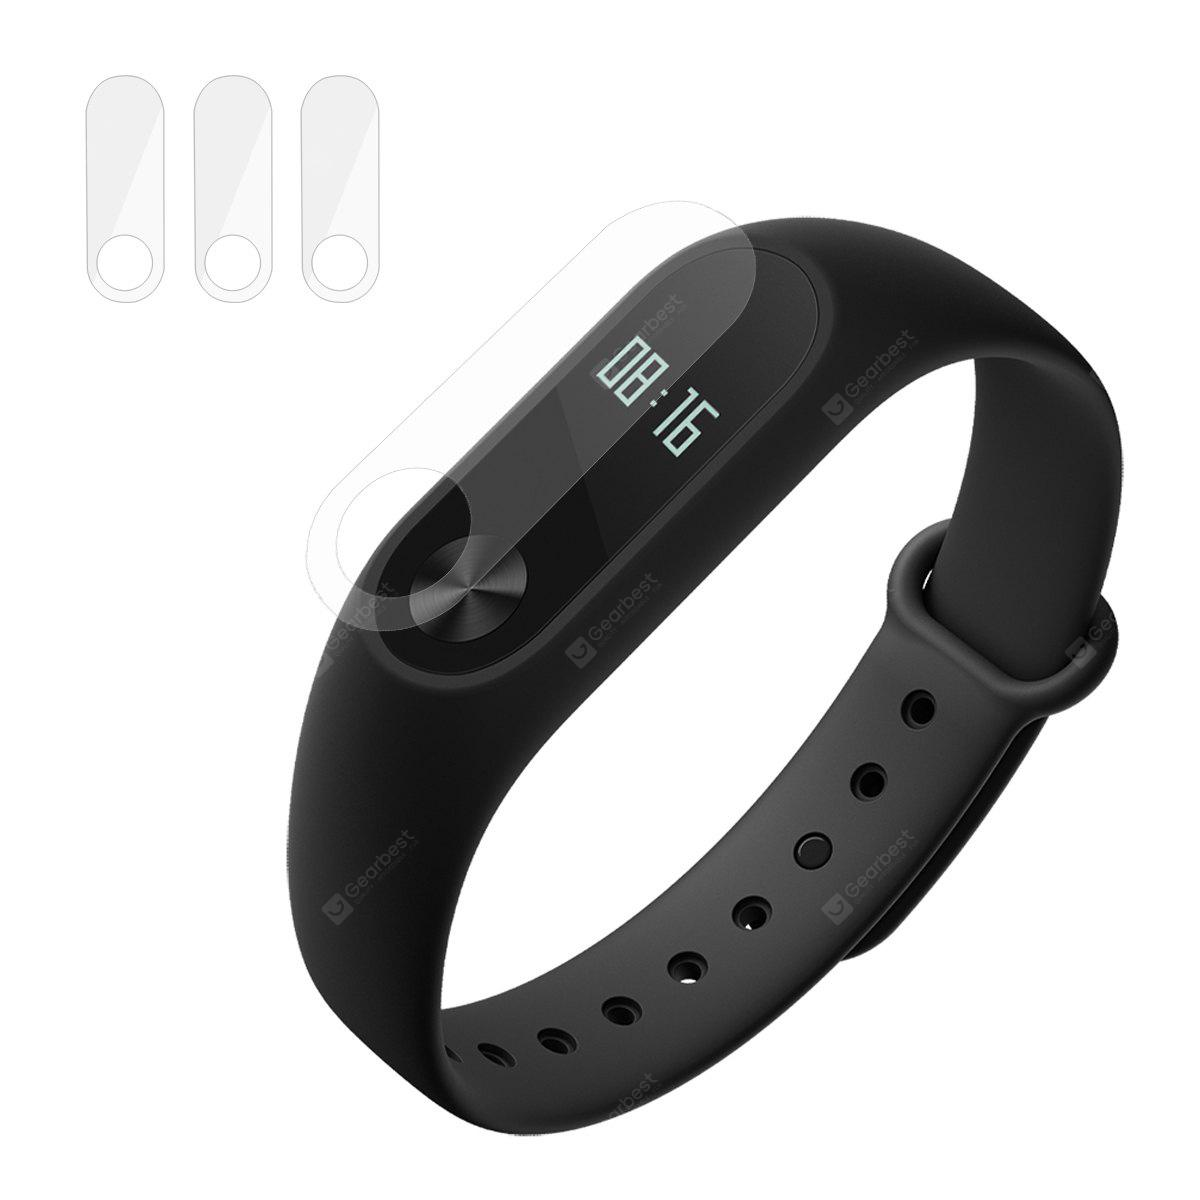 Hat - Prince 3pcs 0.1mm HD Protective Film for Xiaomi Mi Band 2 | Gearbest